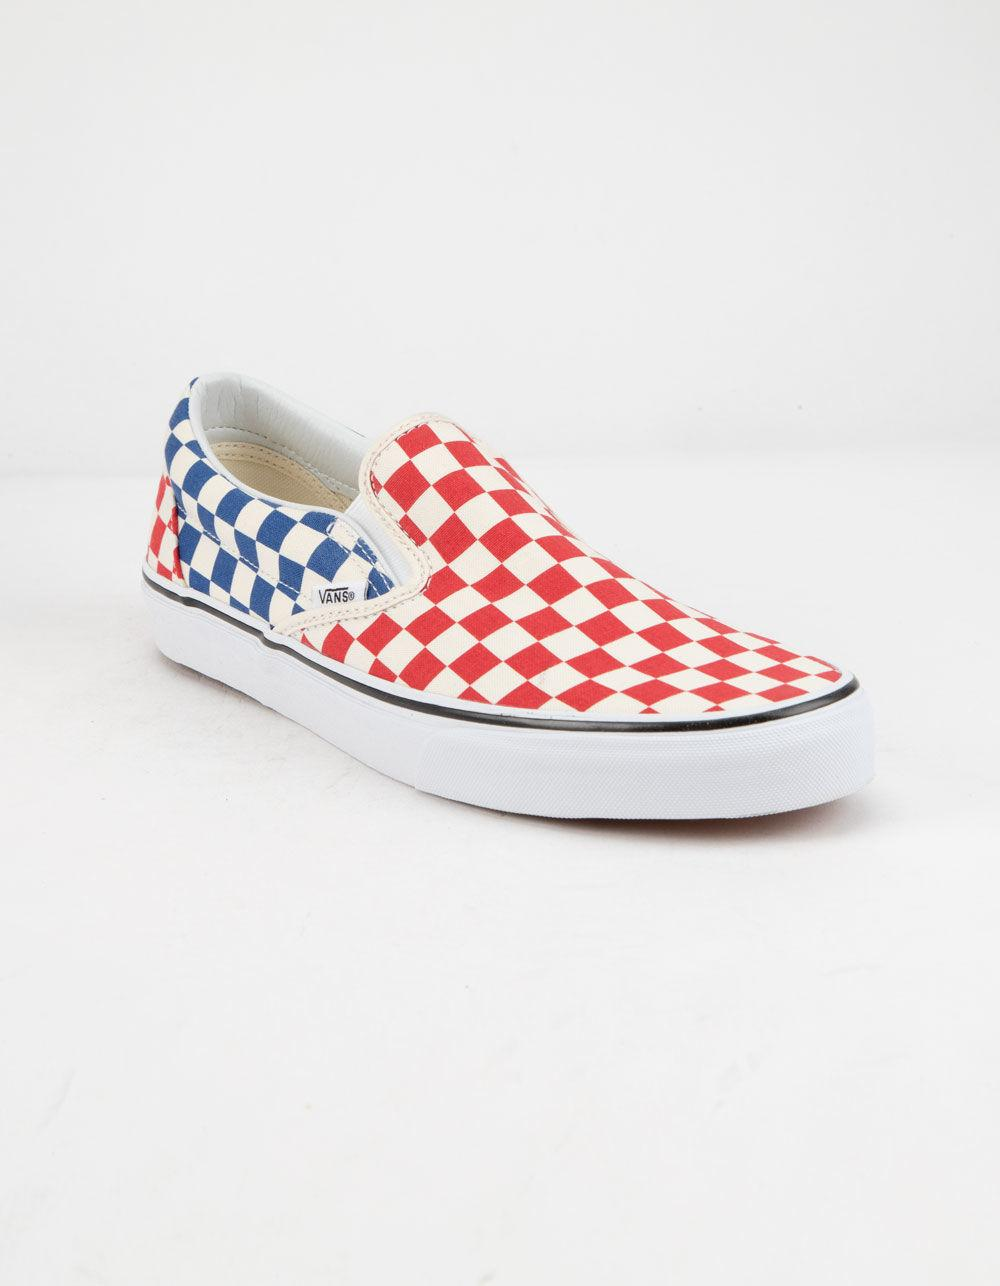 Lyst - Vans Checkerboard Classic Slip-on Red   Blue Shoes 53988f4e3